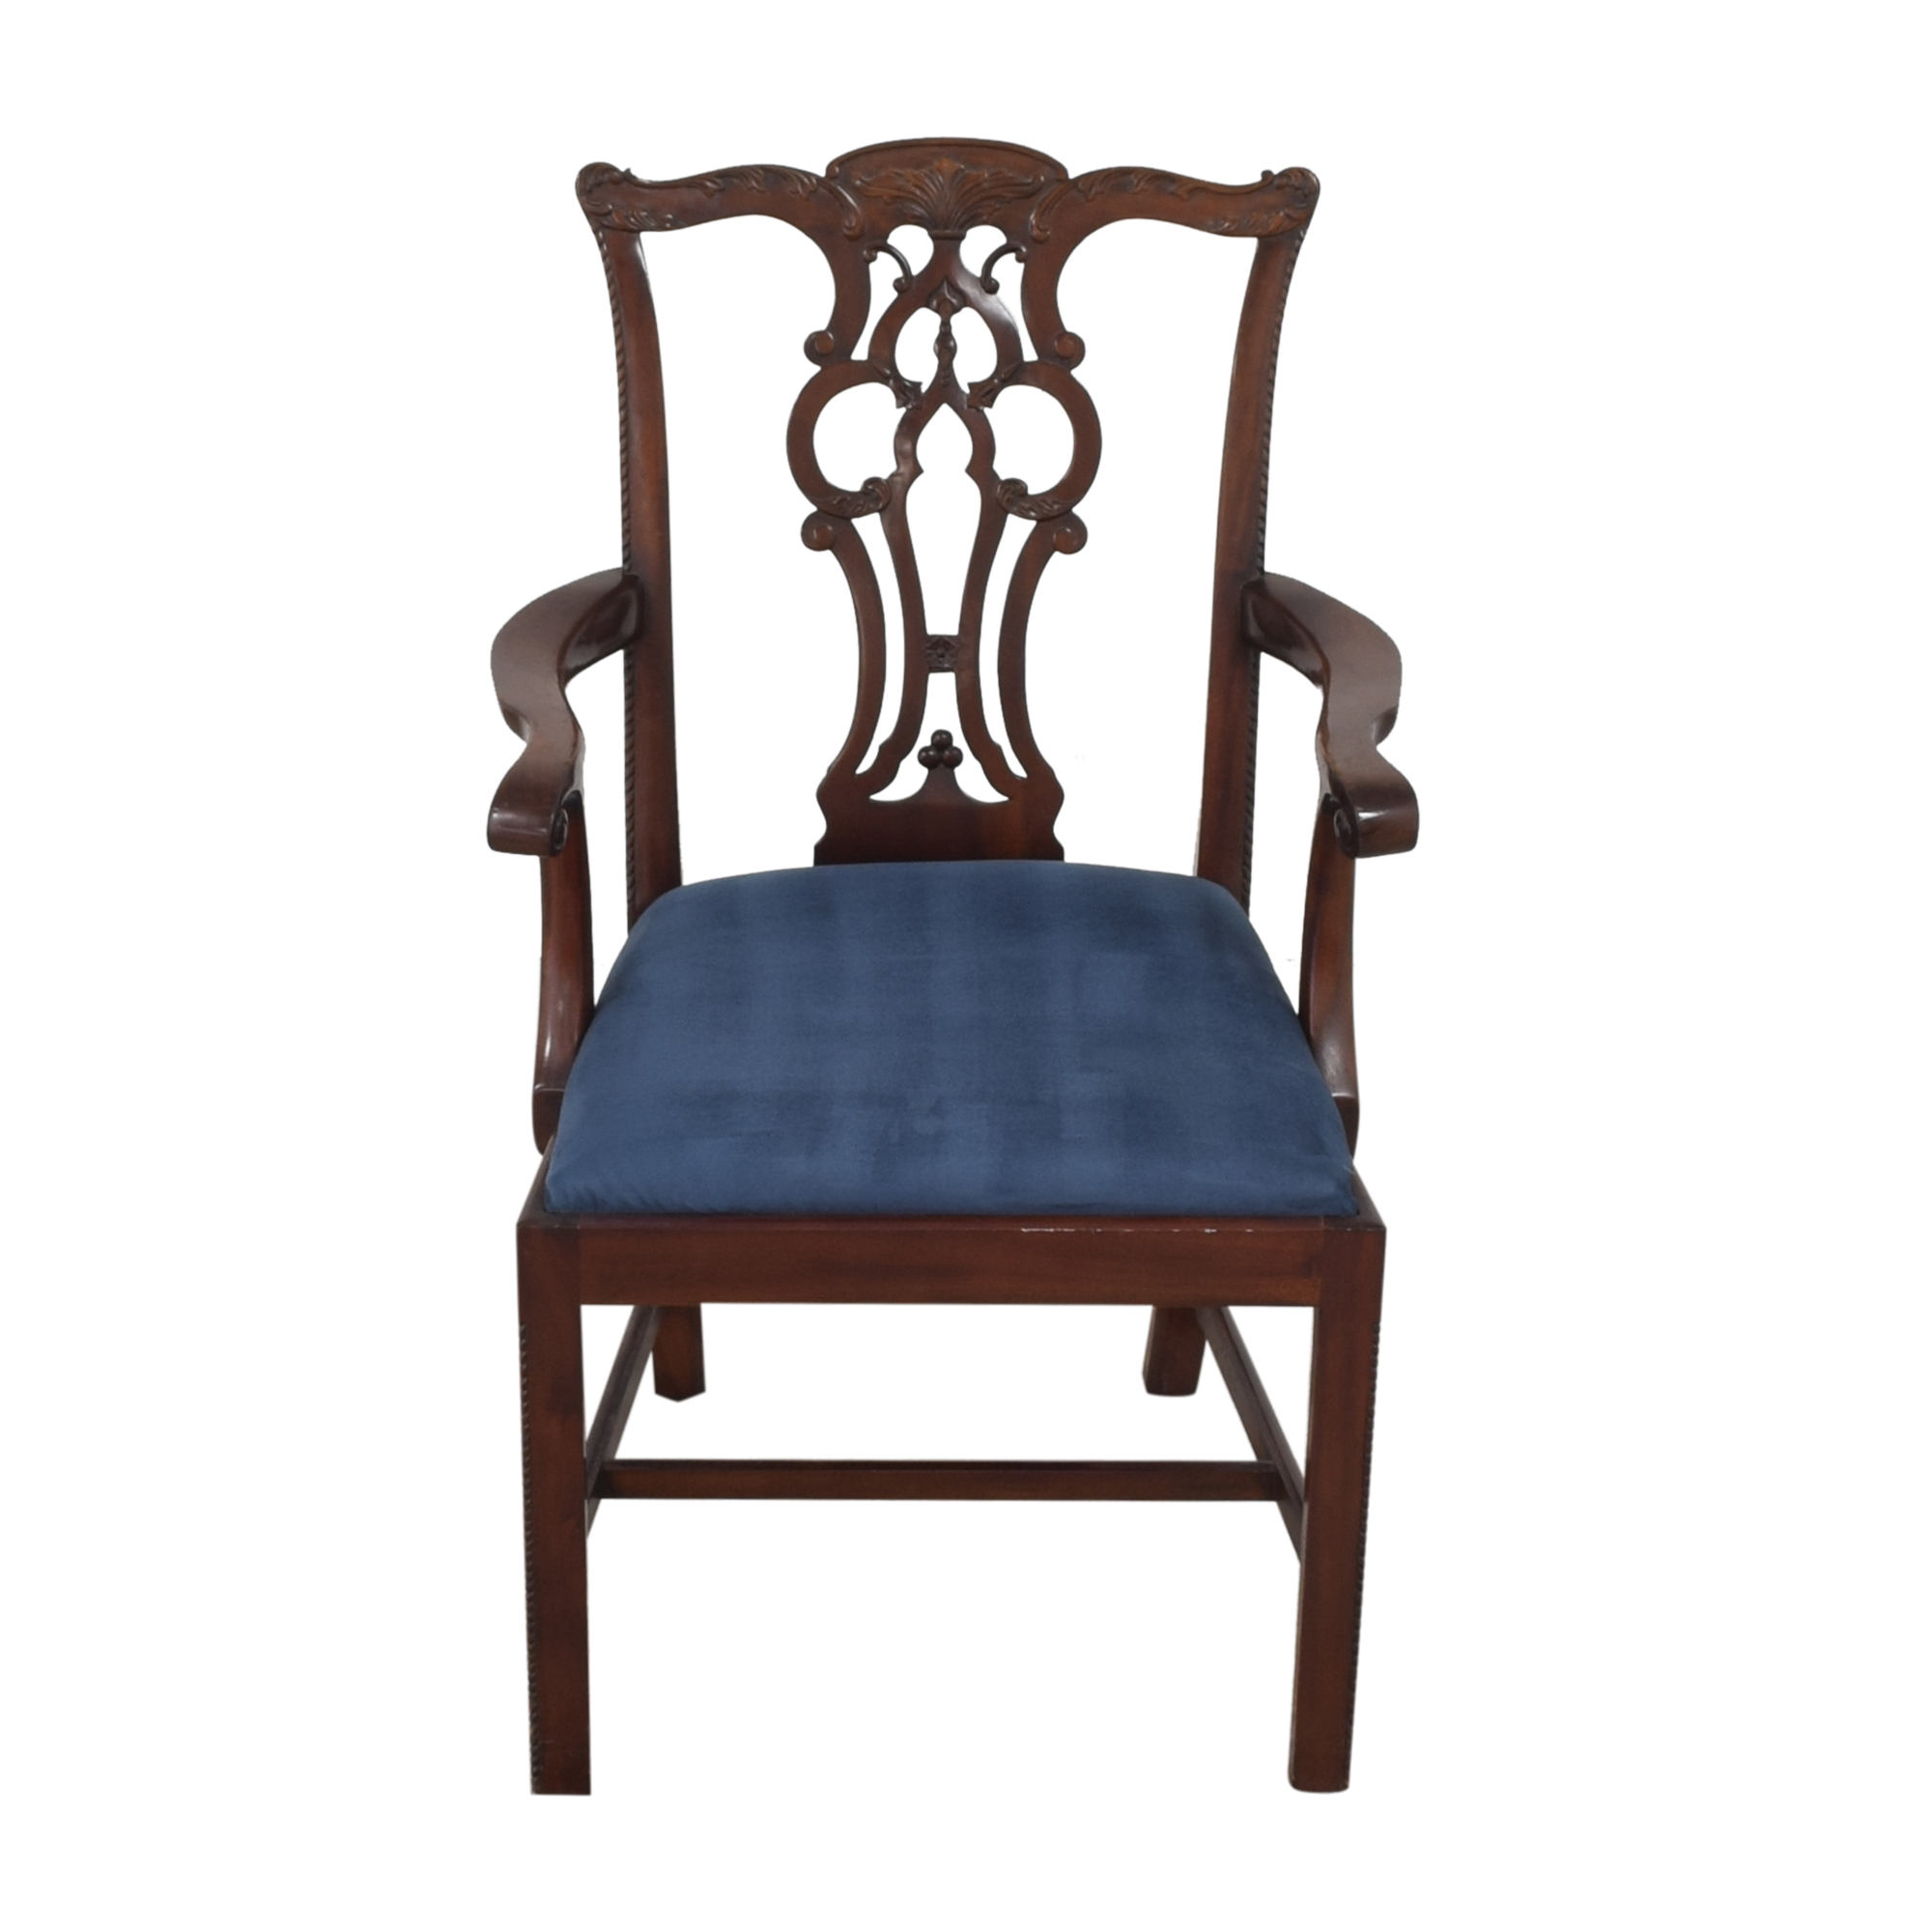 Maitland-Smith Maitland-Smith Chippendale Dining Arm Chair Chairs